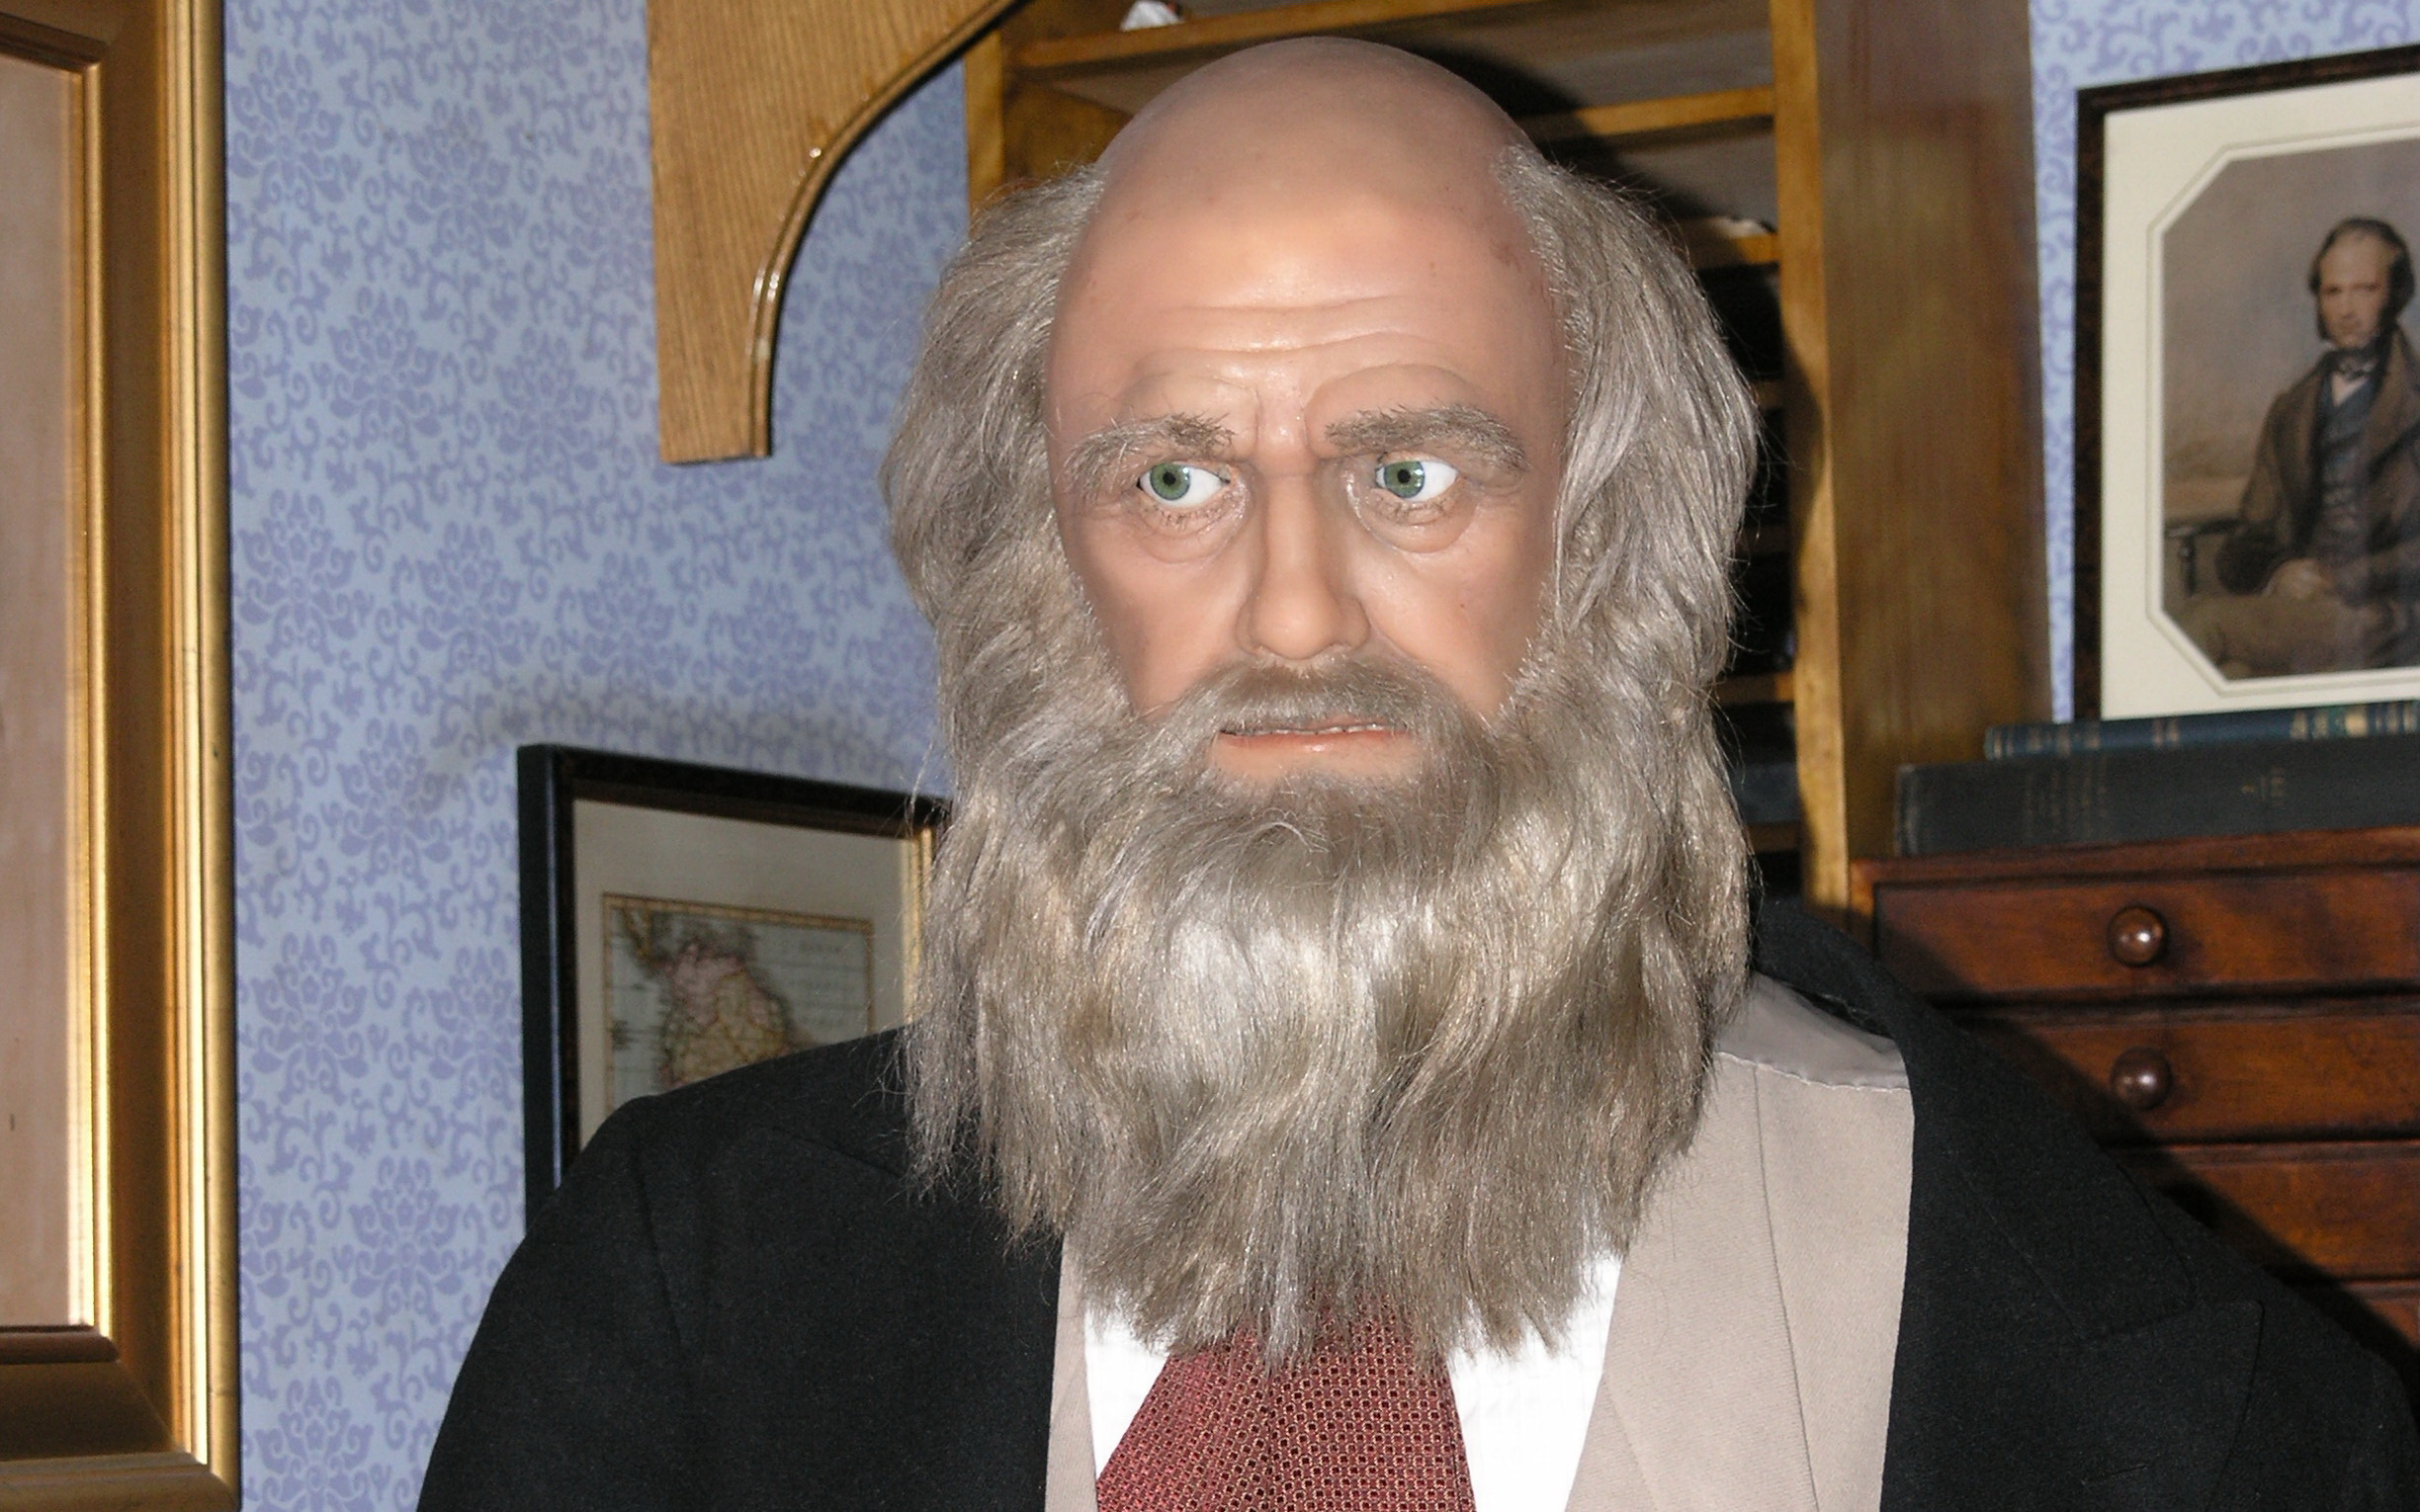 i believe in g0d because of a charles darwin robot i believe in g0d because the animatronic charles darwin robot taught evolution to an amish family